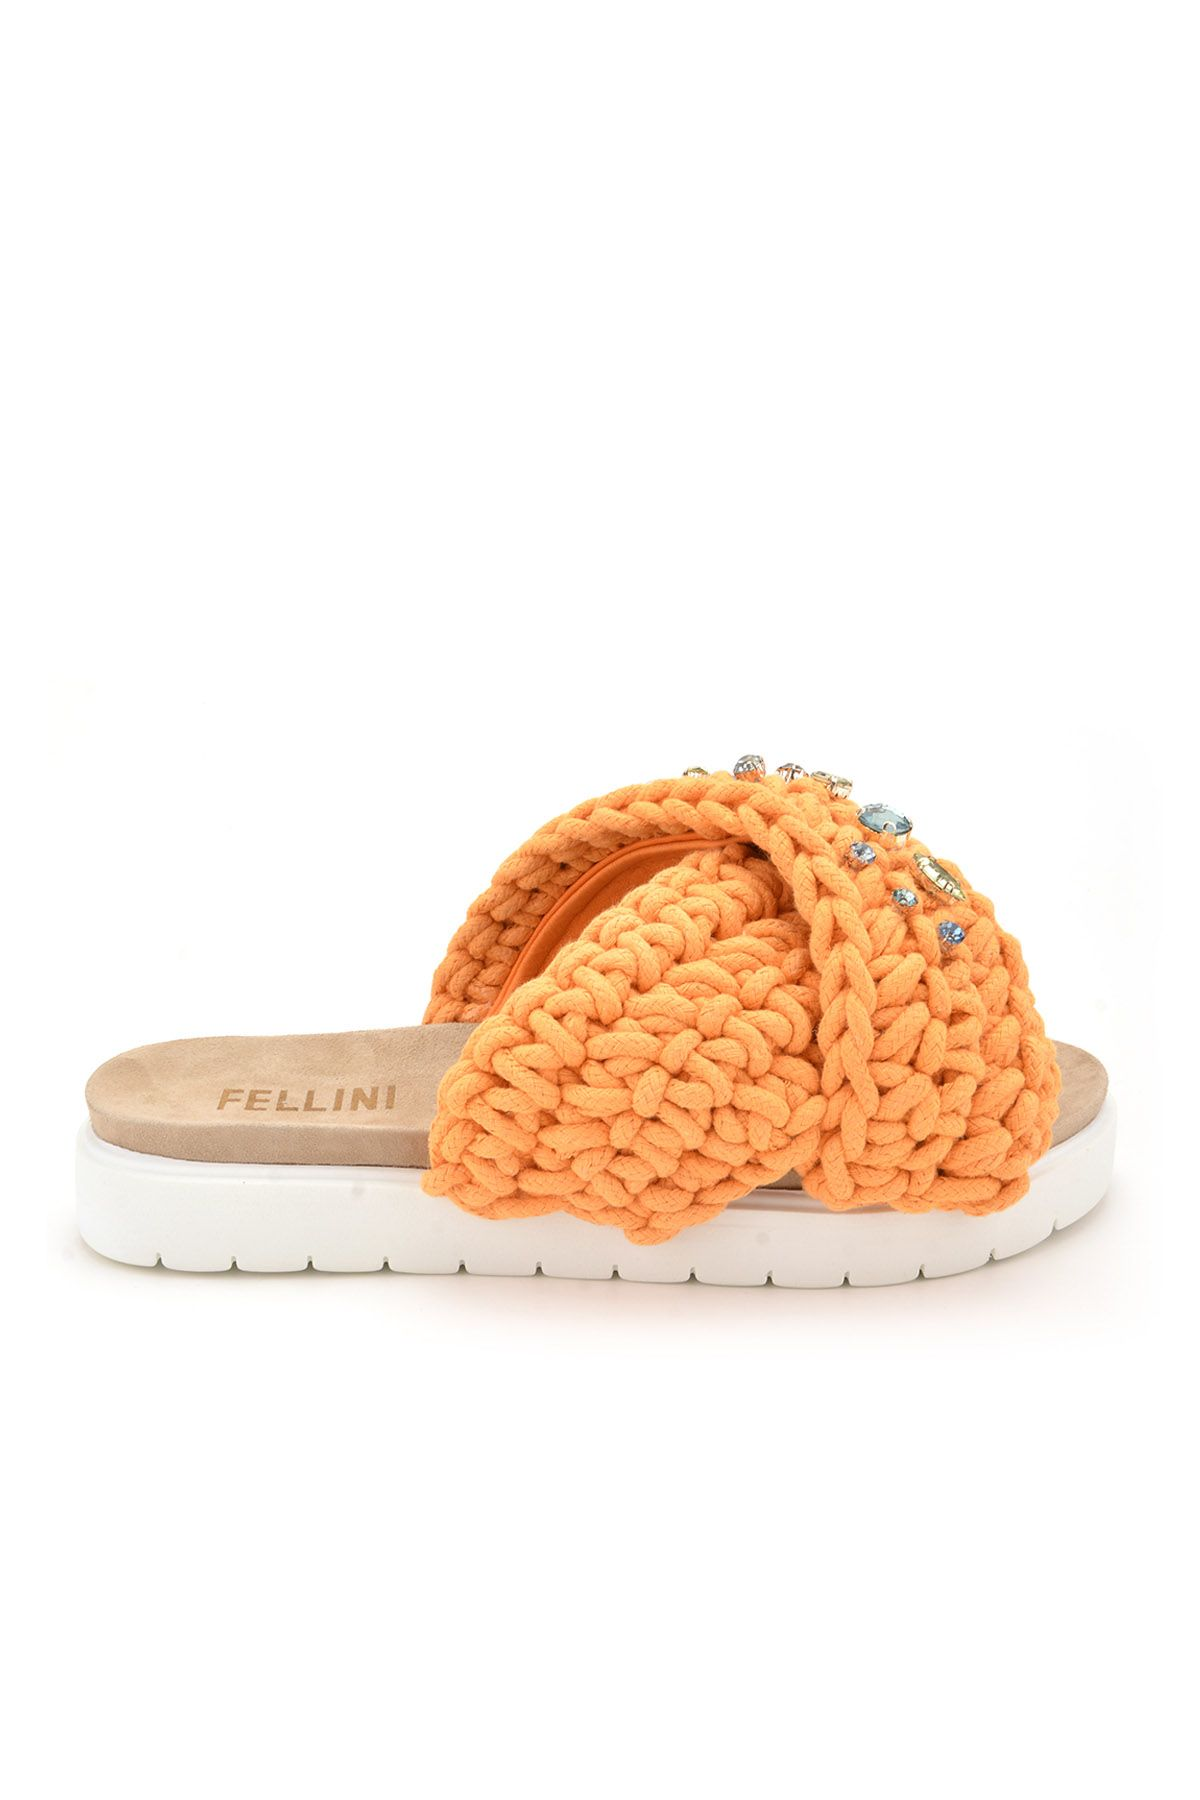 Fln Women Slippers From Genuine Leather And Cotton Cord Orange